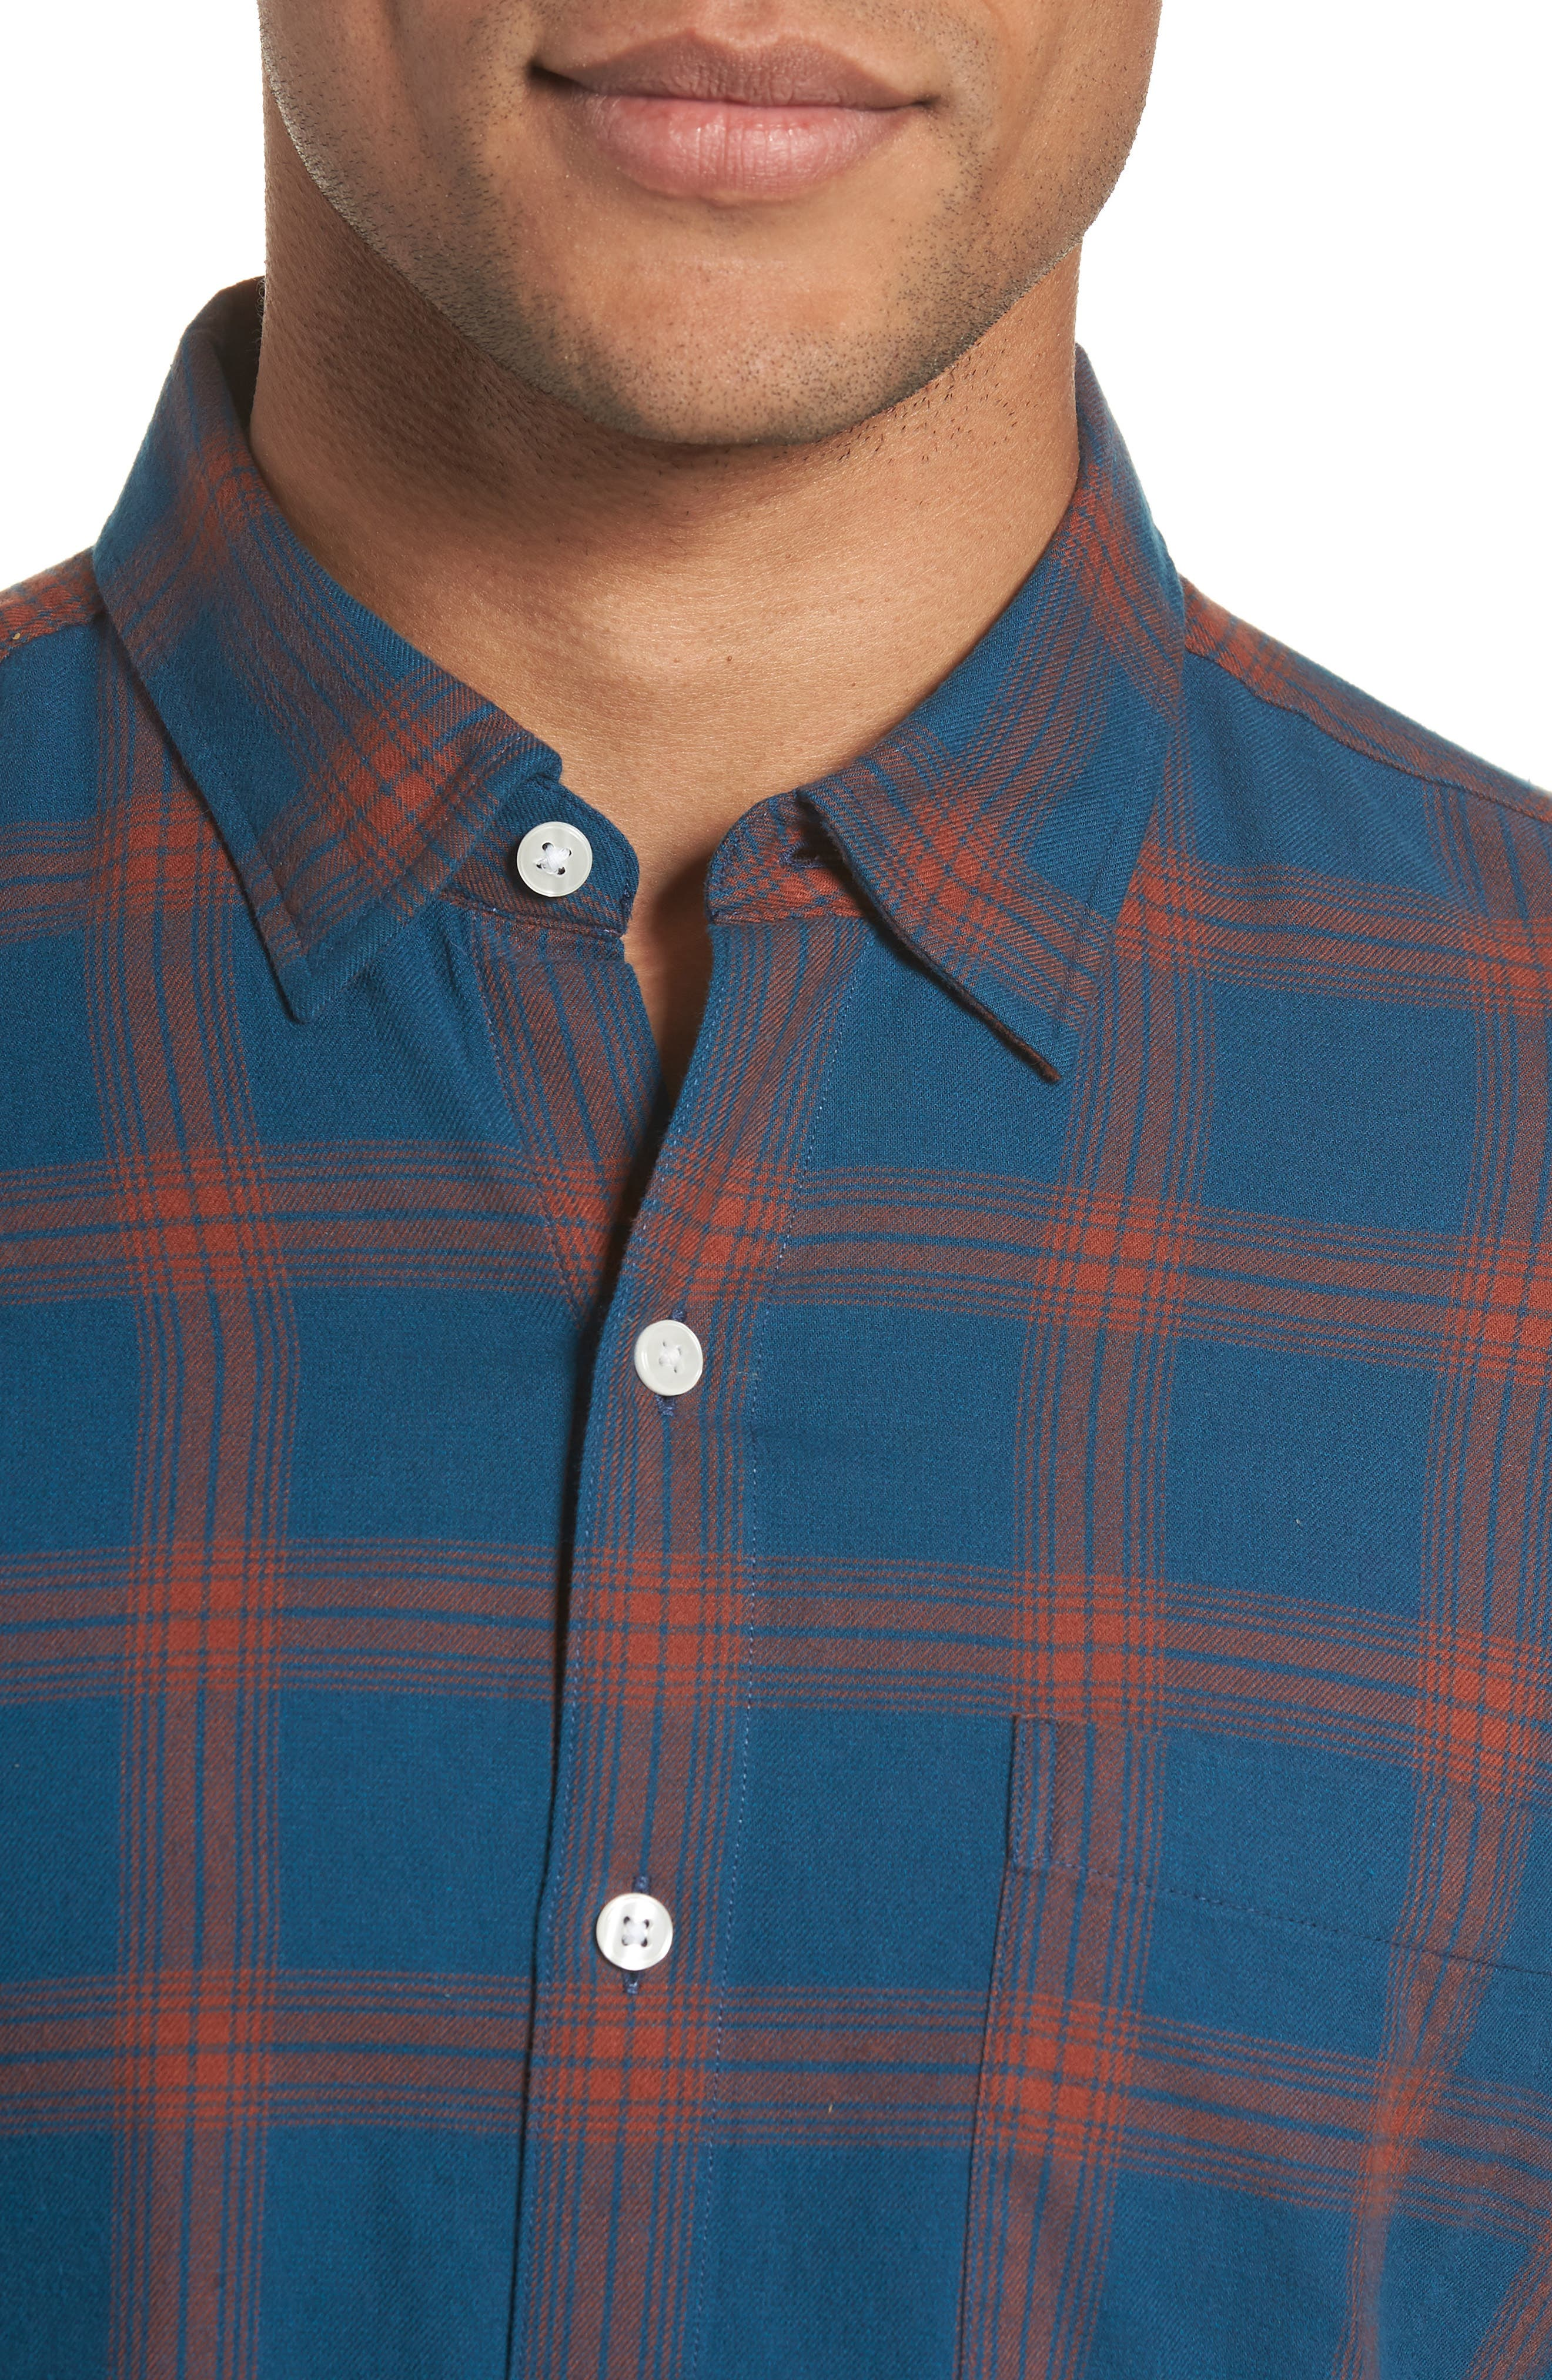 Slim Fit Check Brushed Twill Sport Shirt,                             Alternate thumbnail 2, color,                             CHECK TEAL